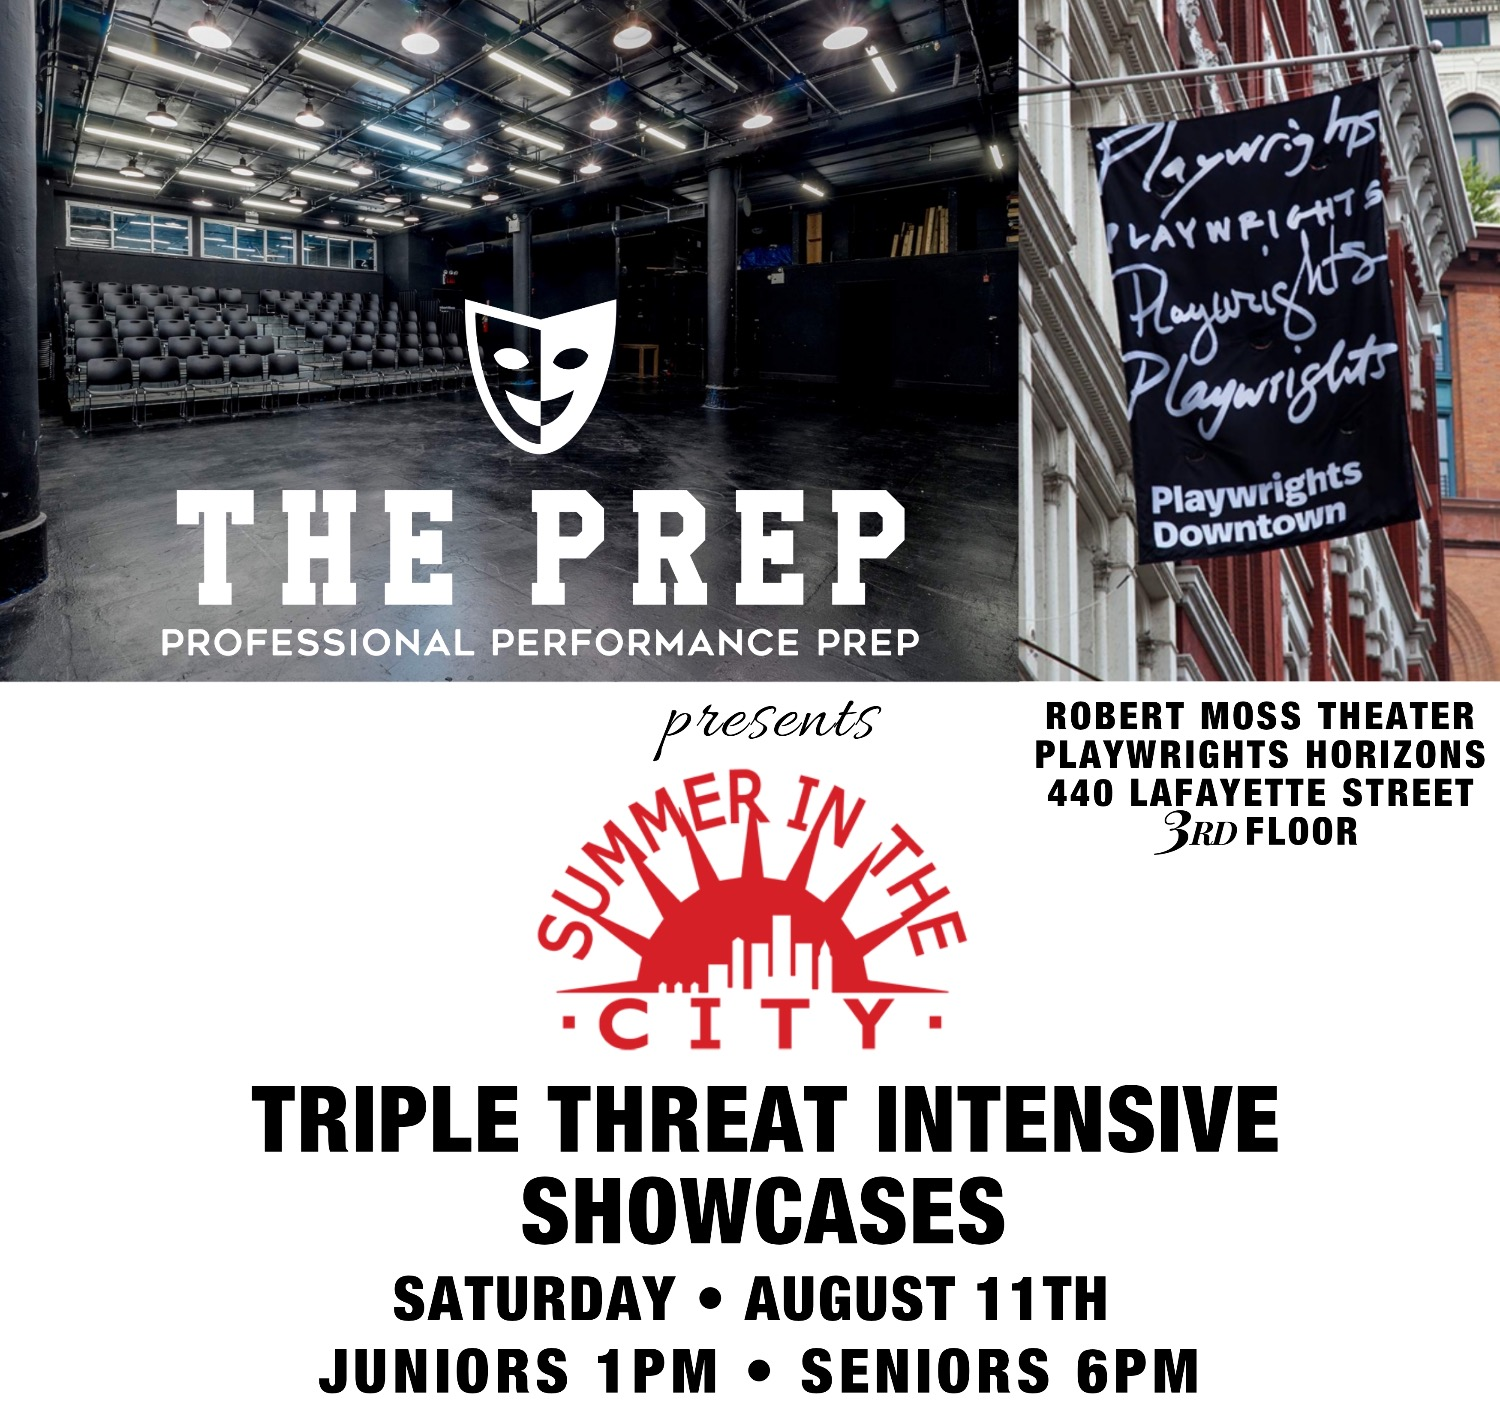 Summer in The City: Triple Threat Summer Intensive Showcases